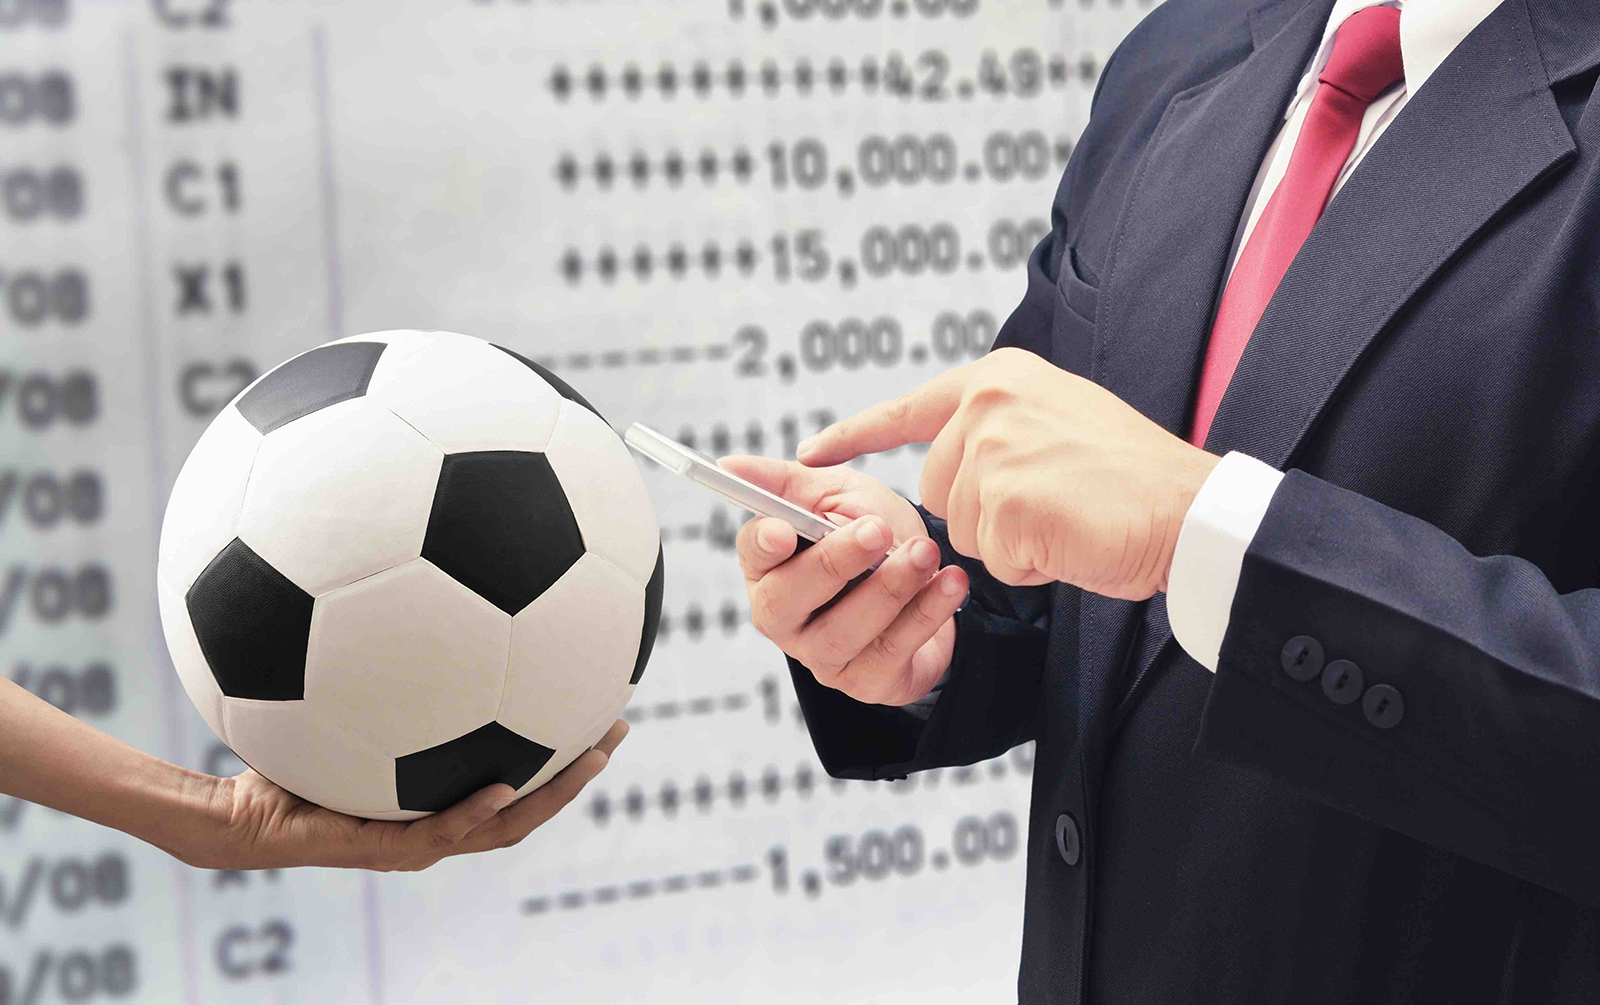 Payments to football agents - what clubs & players need to know about HMRC's new guidance